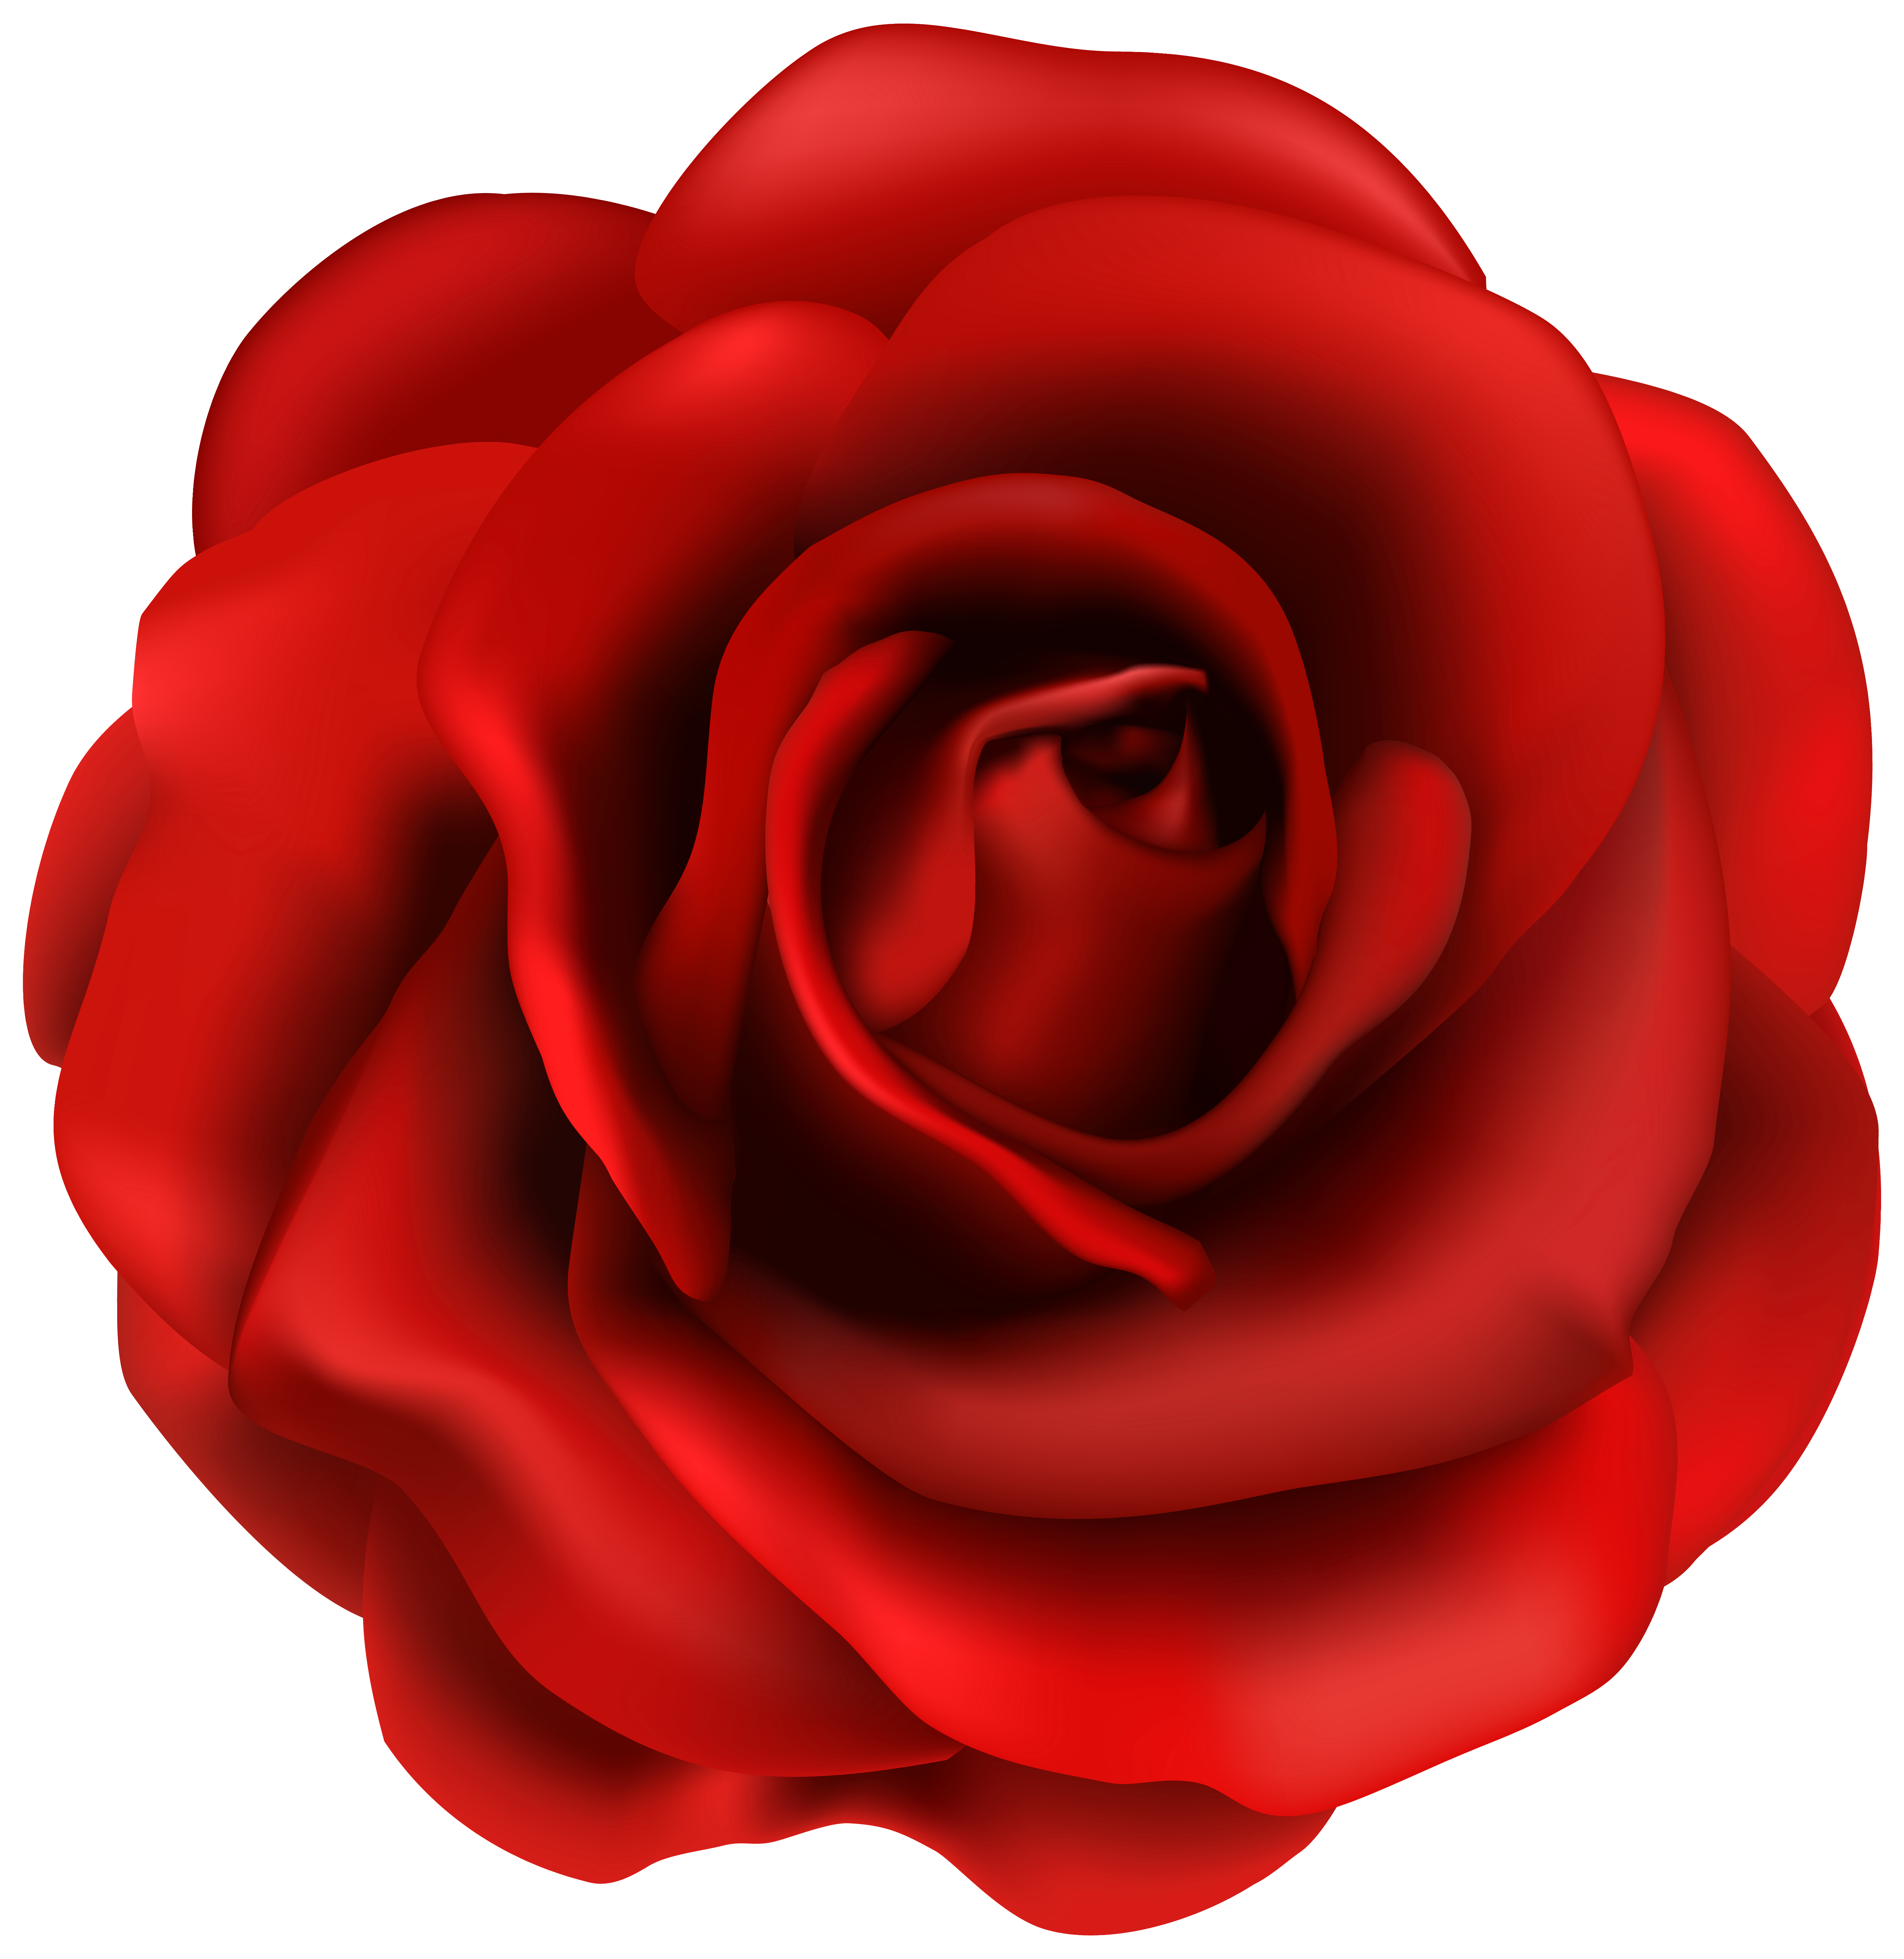 Red Rose Flower PNG Clipart Image.